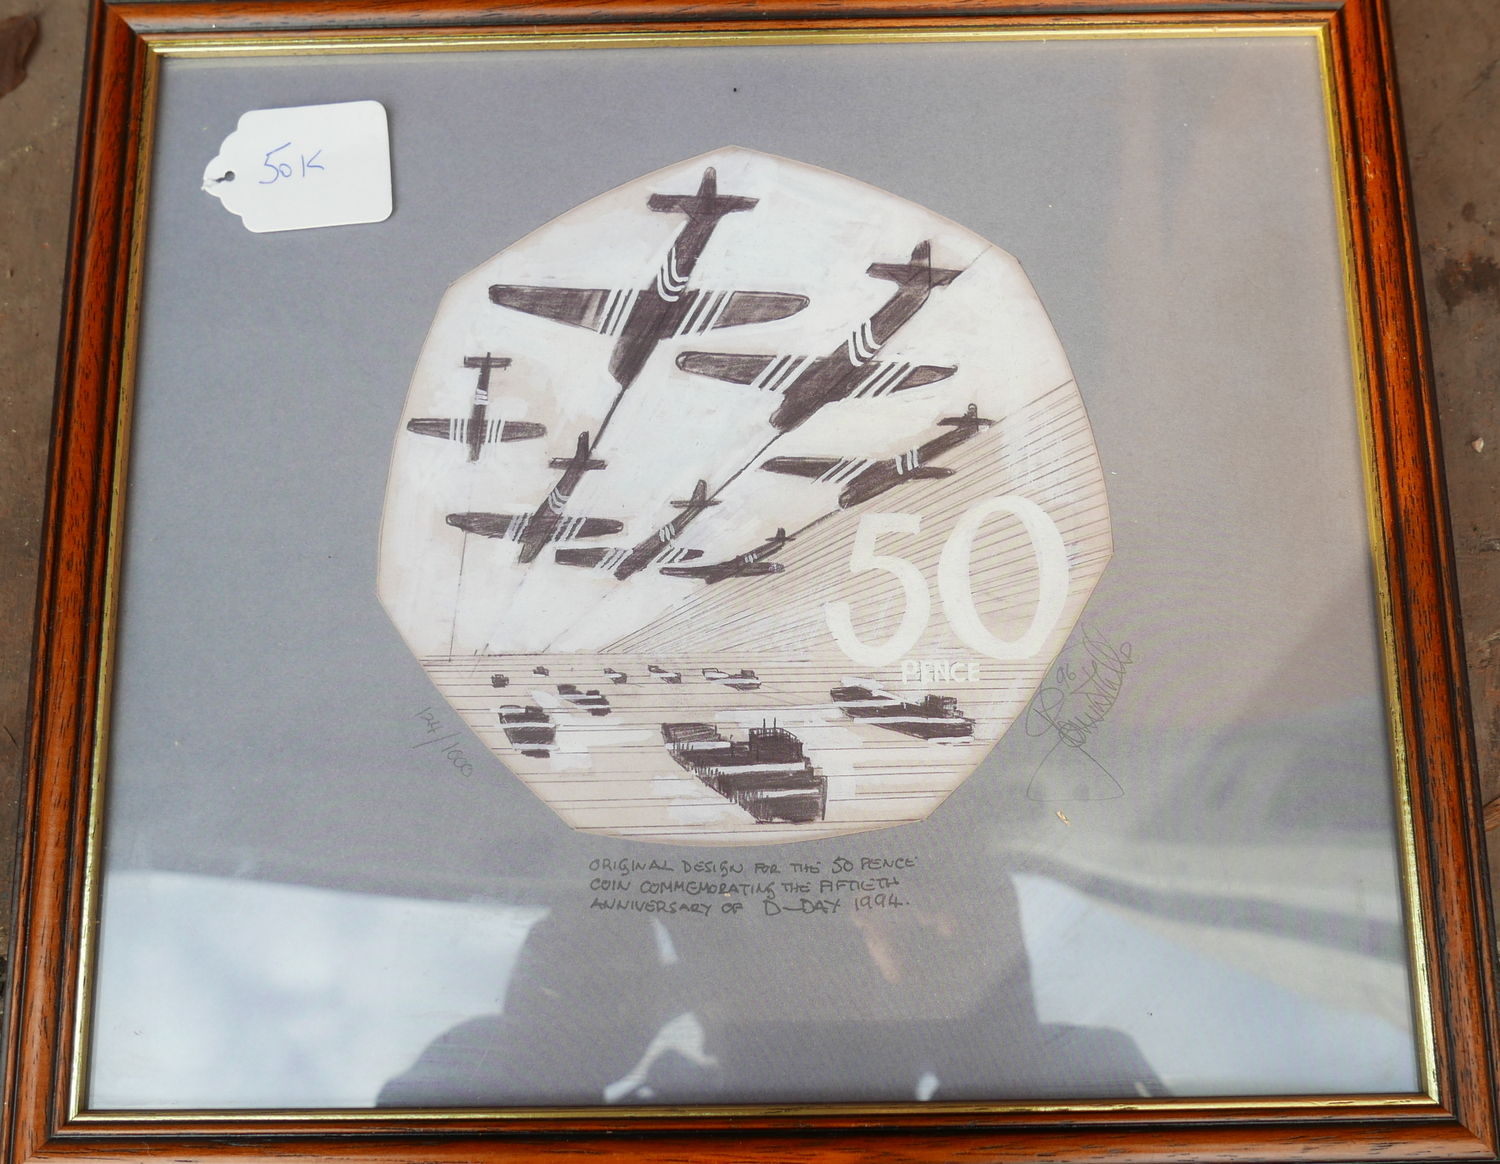 Lot 50K - Original Framed Design Print for the 50p commemorating the 50th anniversary of D Day by John Mills.